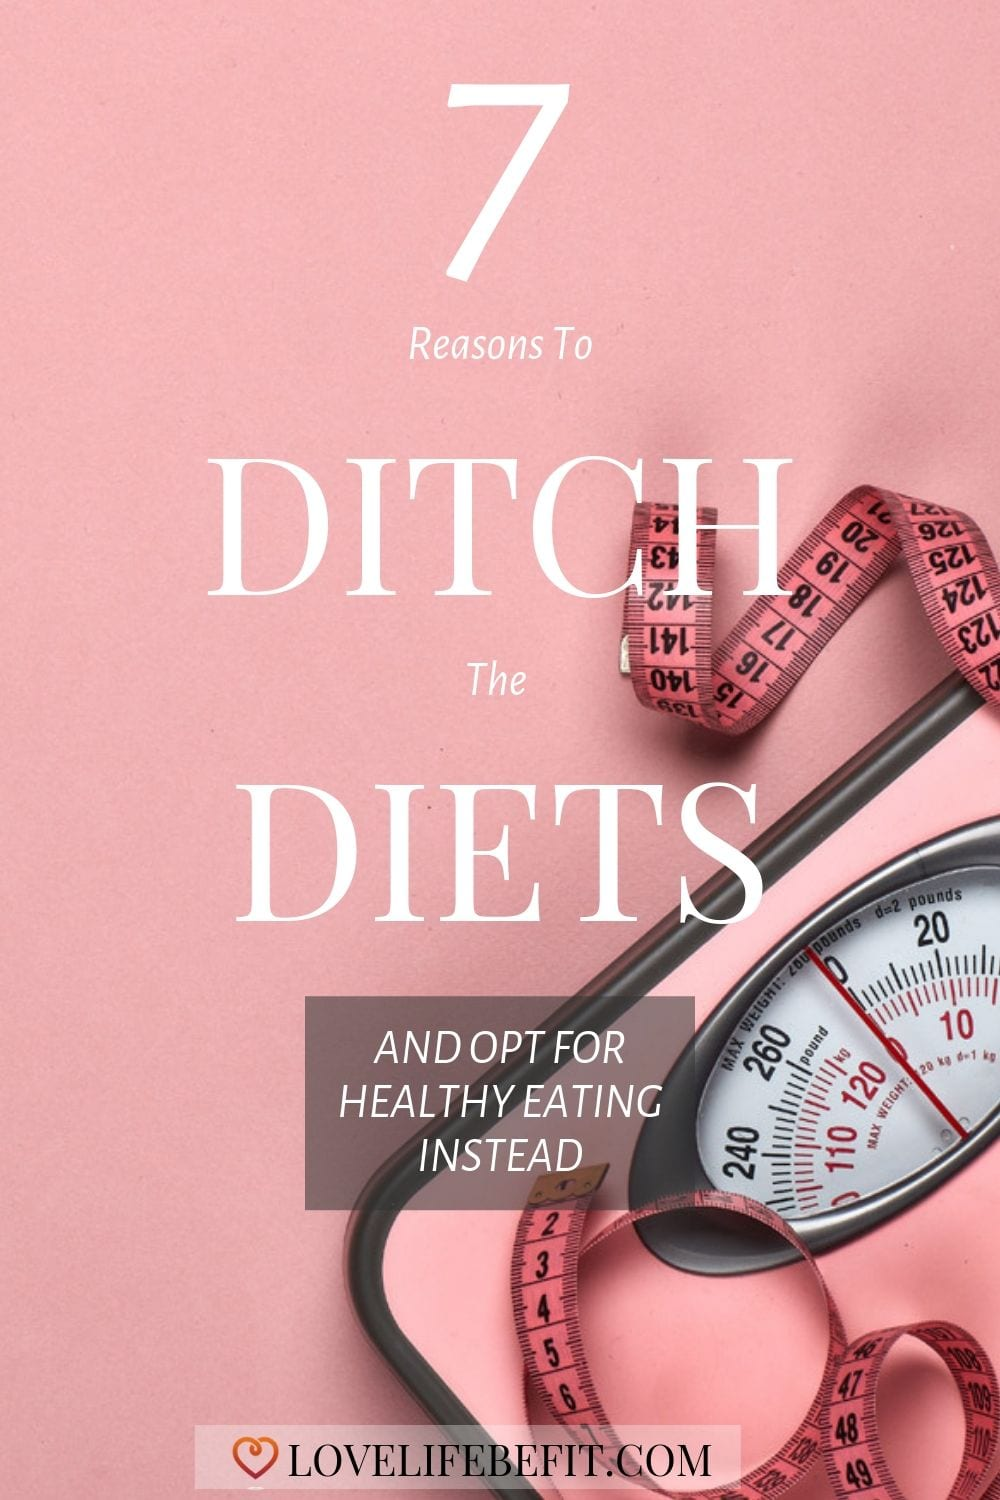 Hands up who started a diet in January and lapsed by February? Did you lose any weight or did you end up with your weight even higher than when you started? Read on for reasons to ditch the diet...#healthyeating